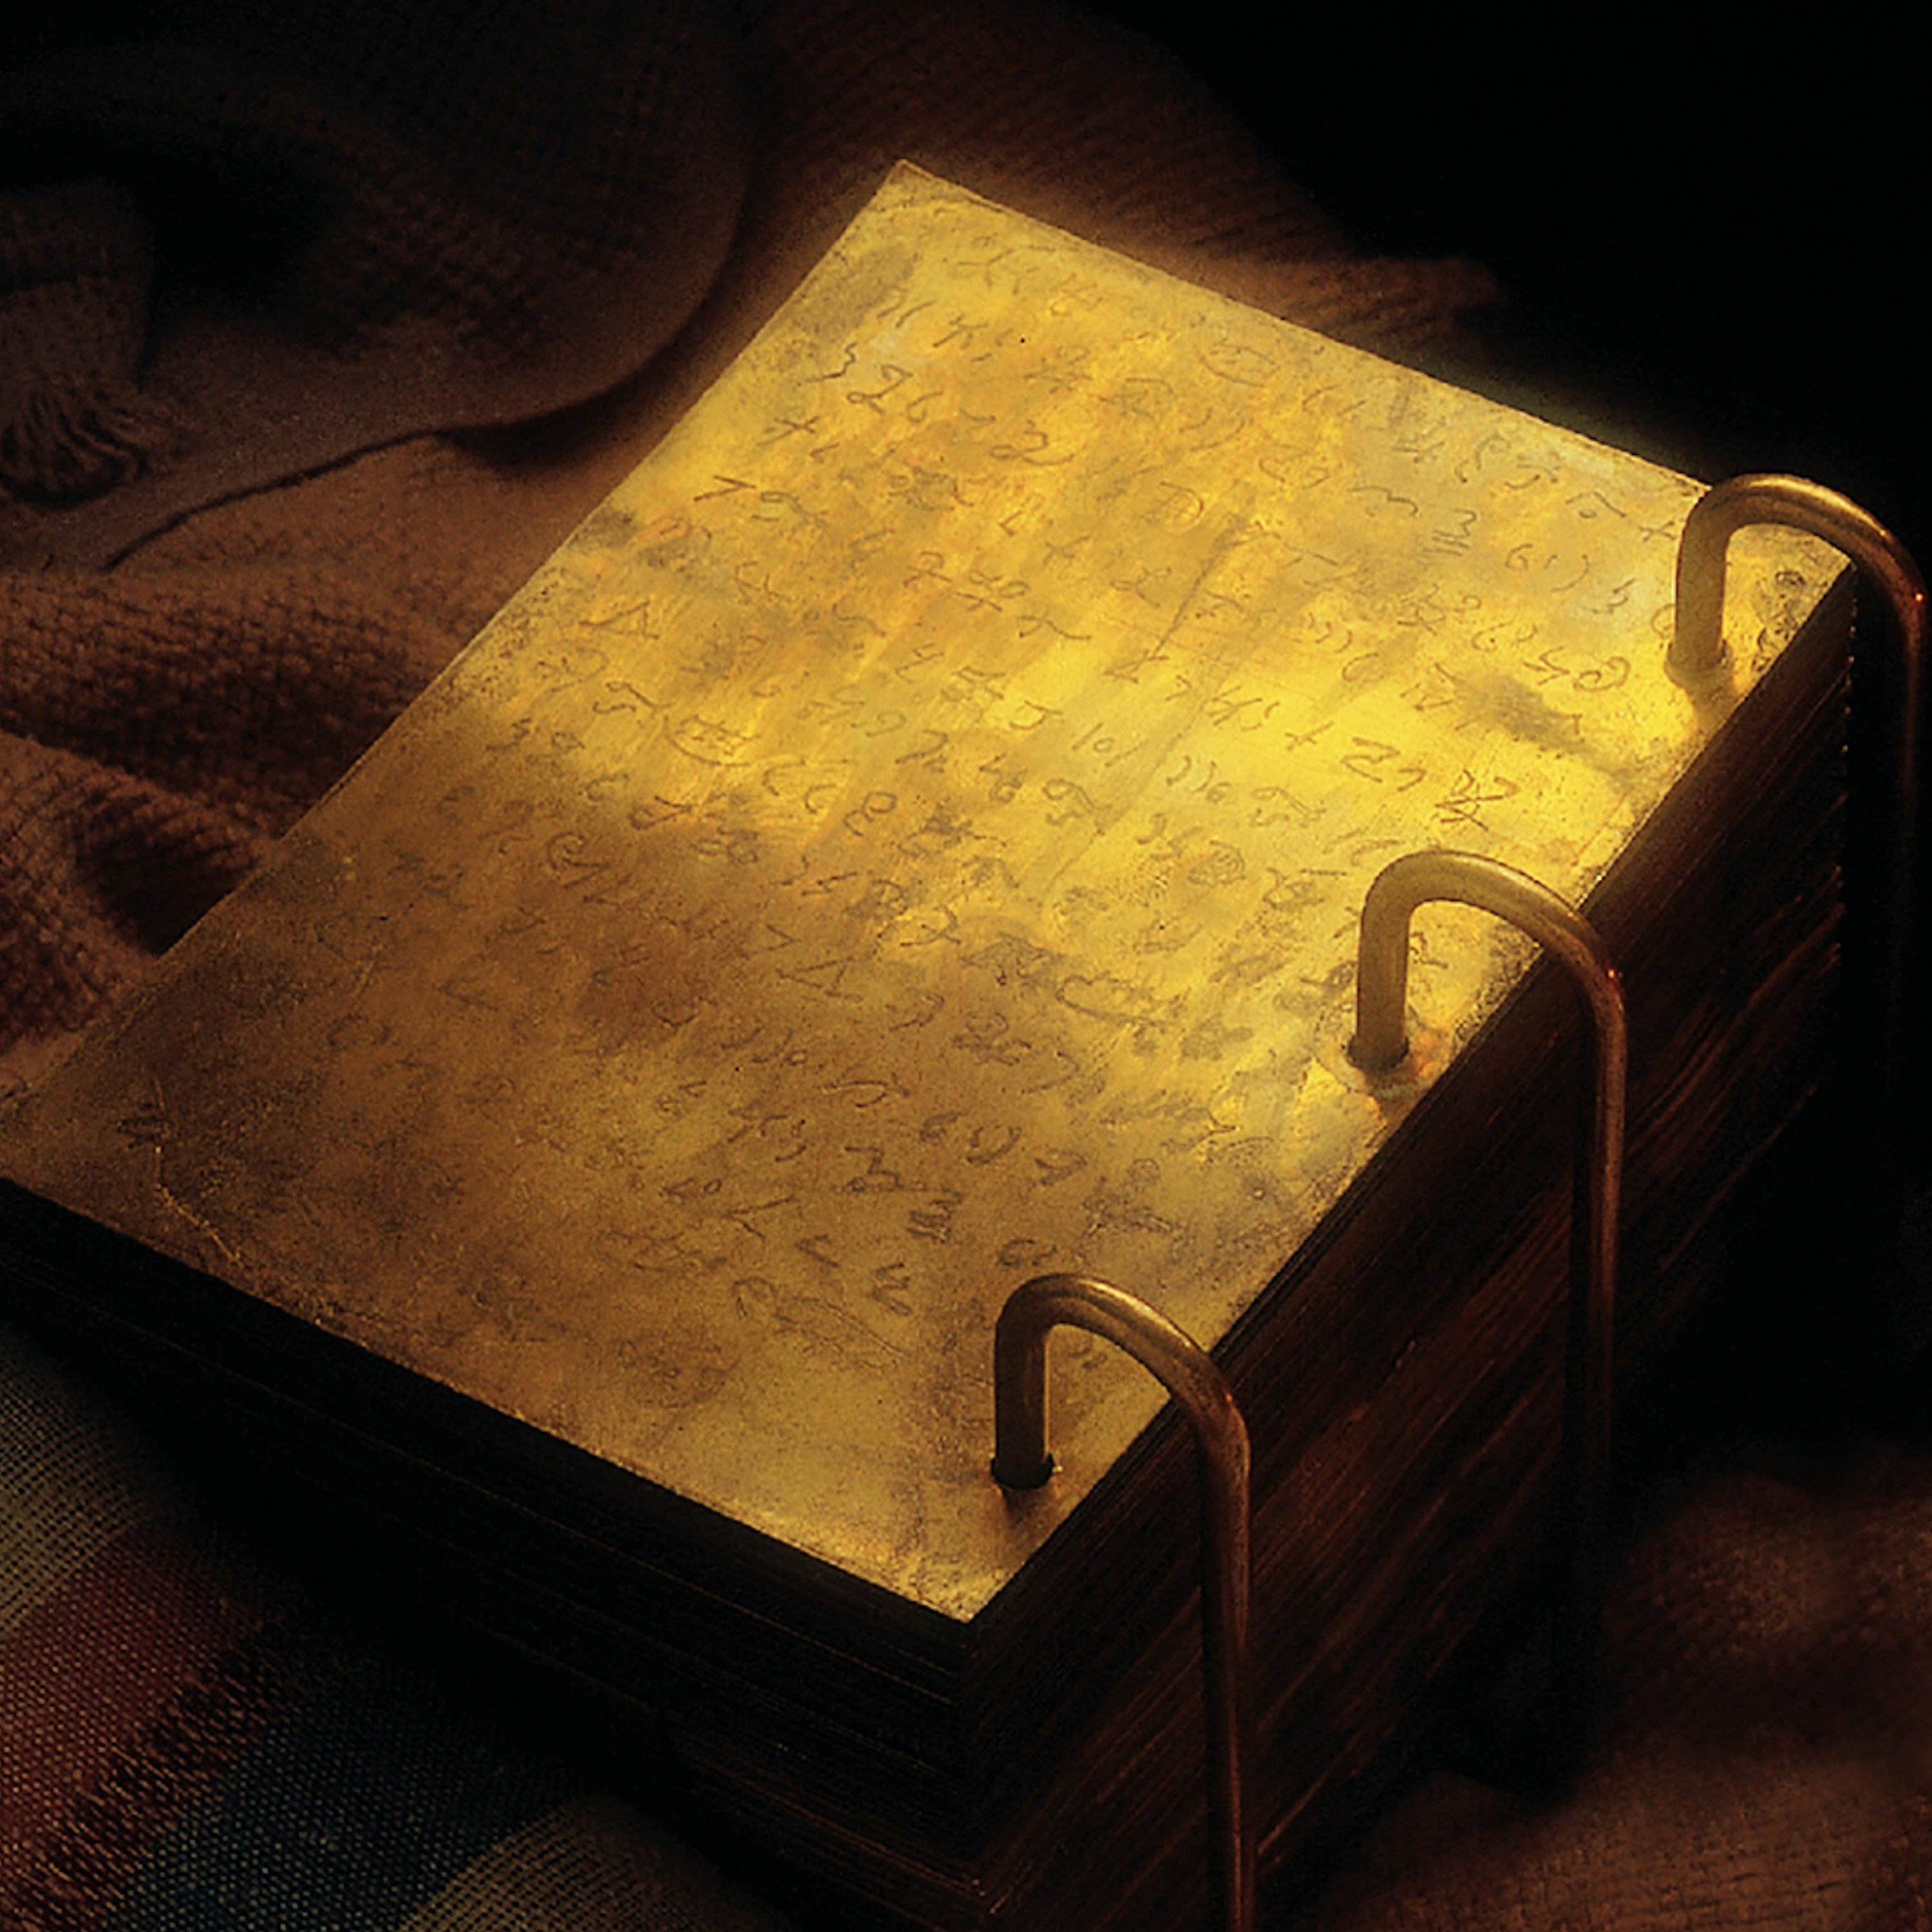 Are the Accounts of the Golden Plates...